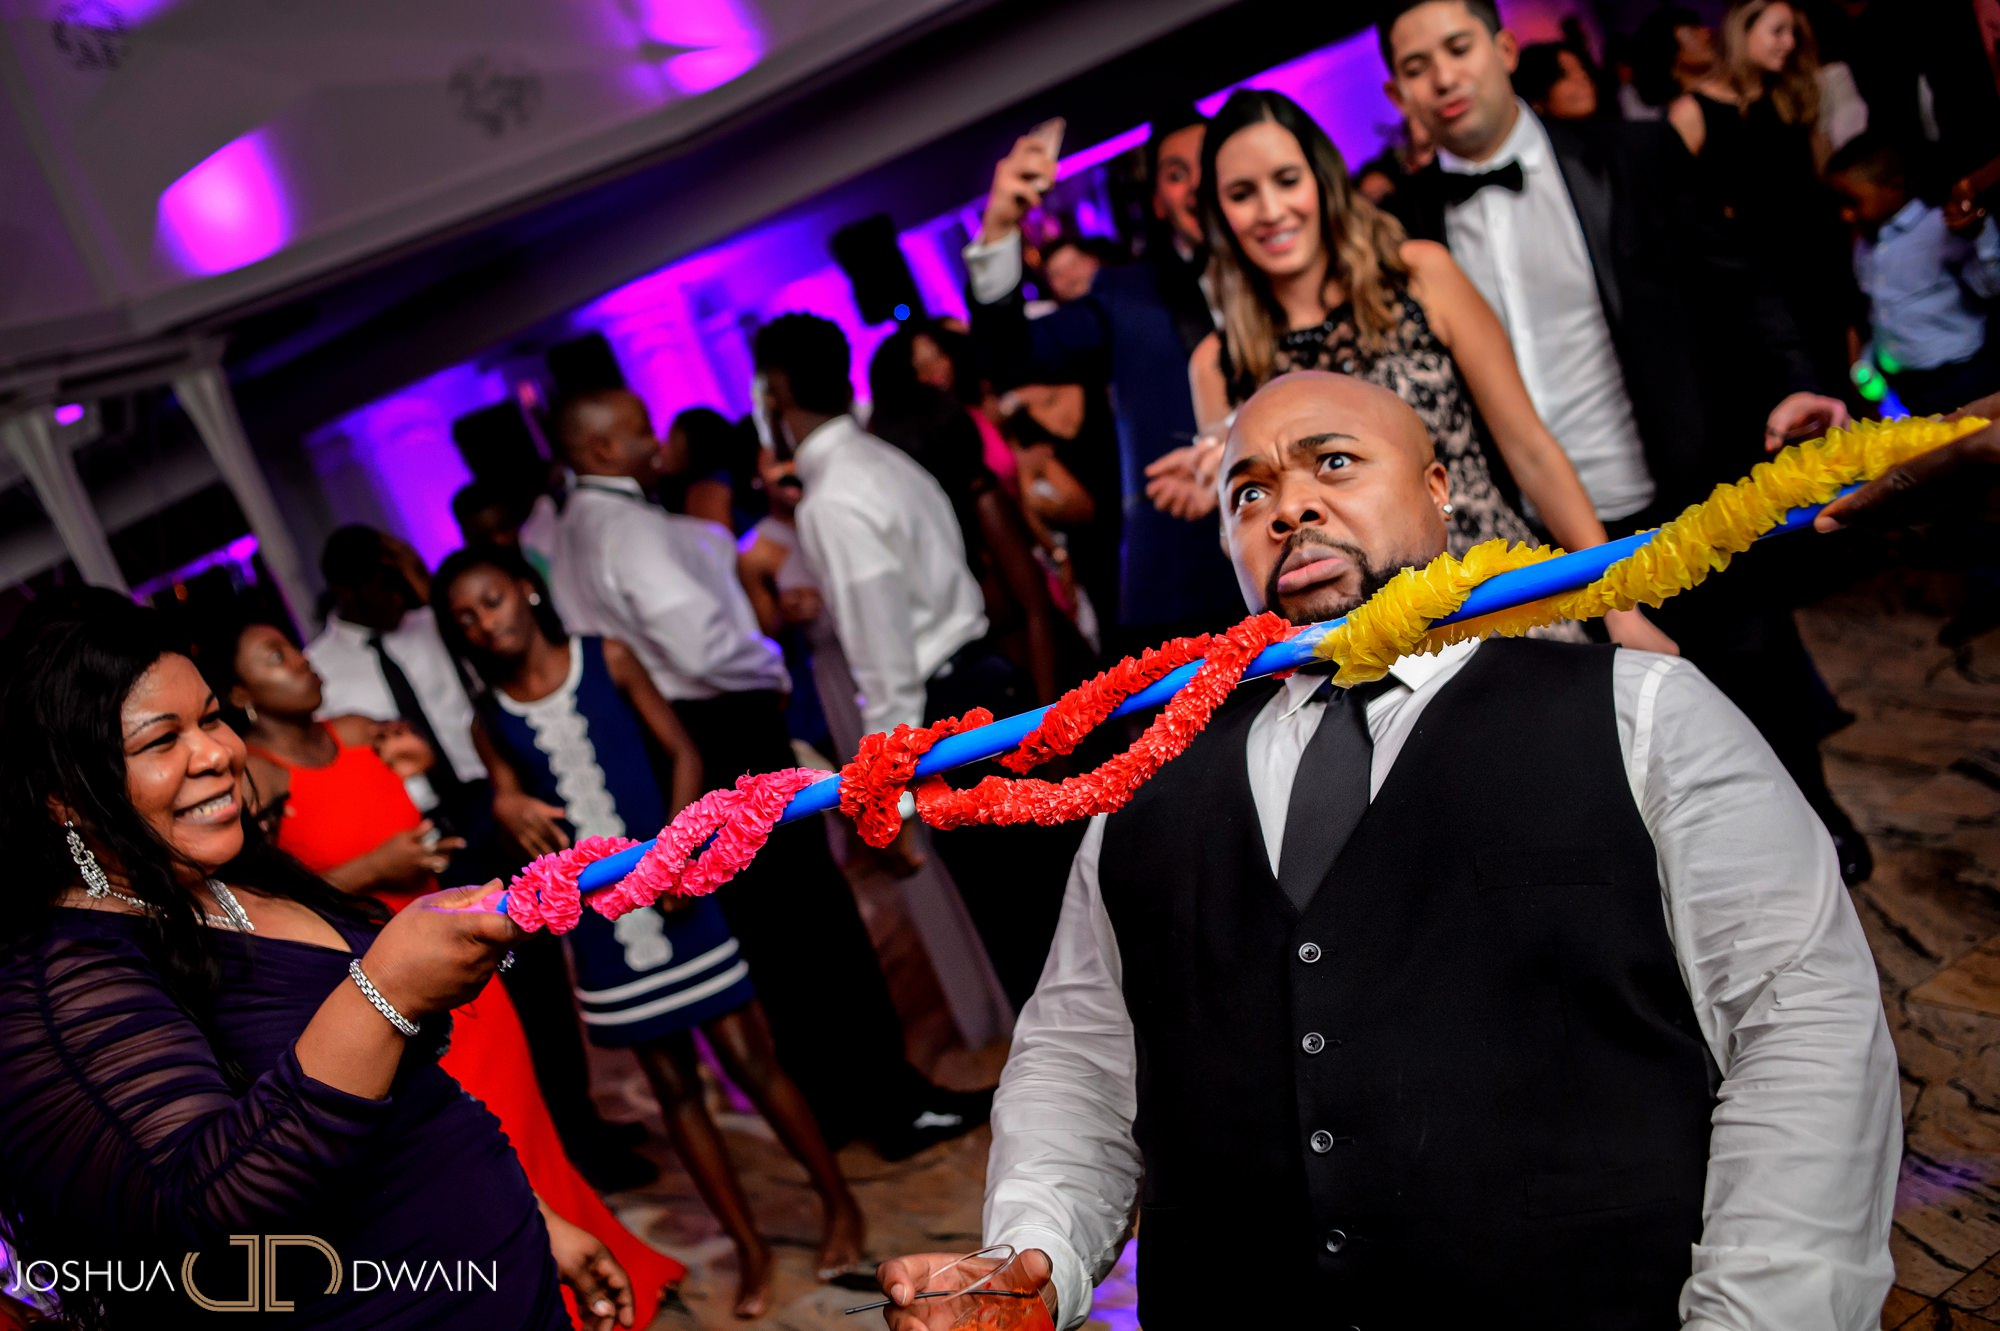 stephanie-richard-41-westmount-country-club-joshua-dwain-nj-wedding-photography